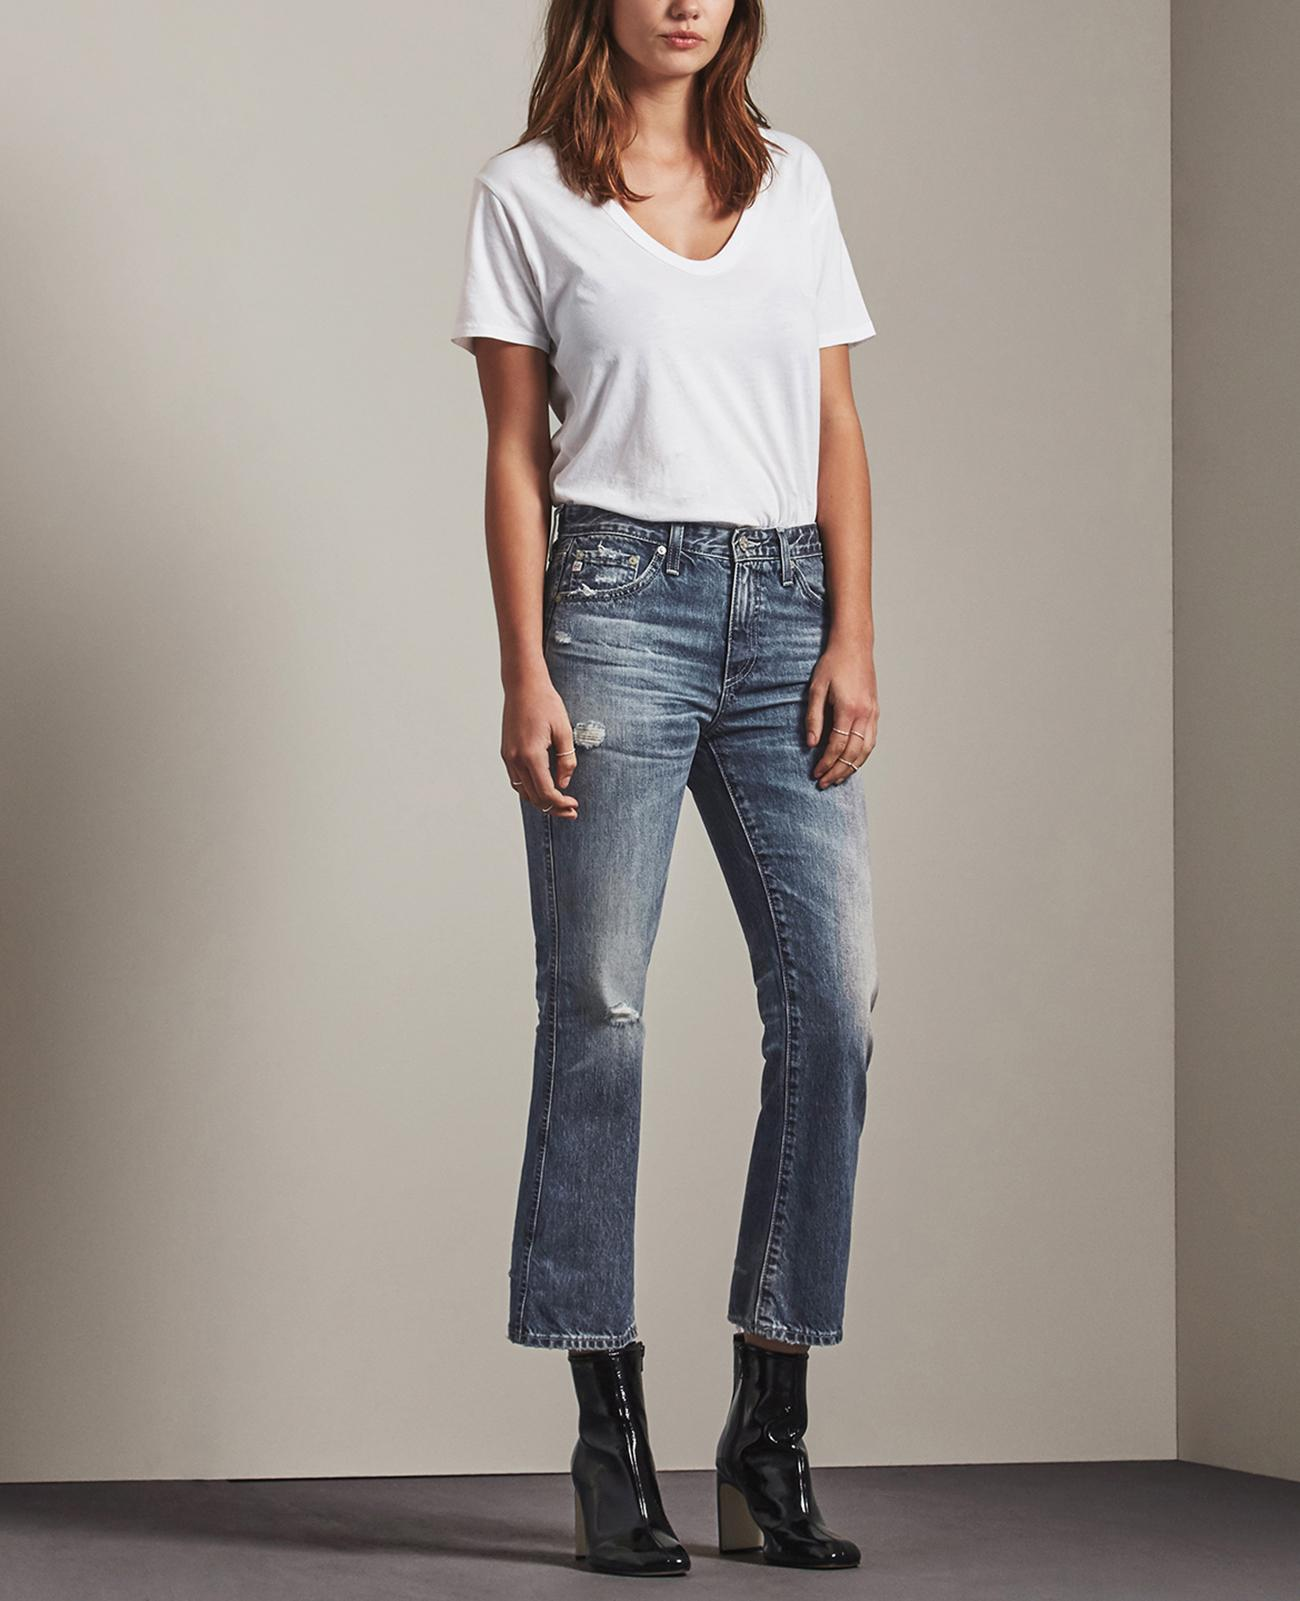 The Store Years Wind Ag Jeans Official Worn Jodi Crop 23 In D9EYWH2I